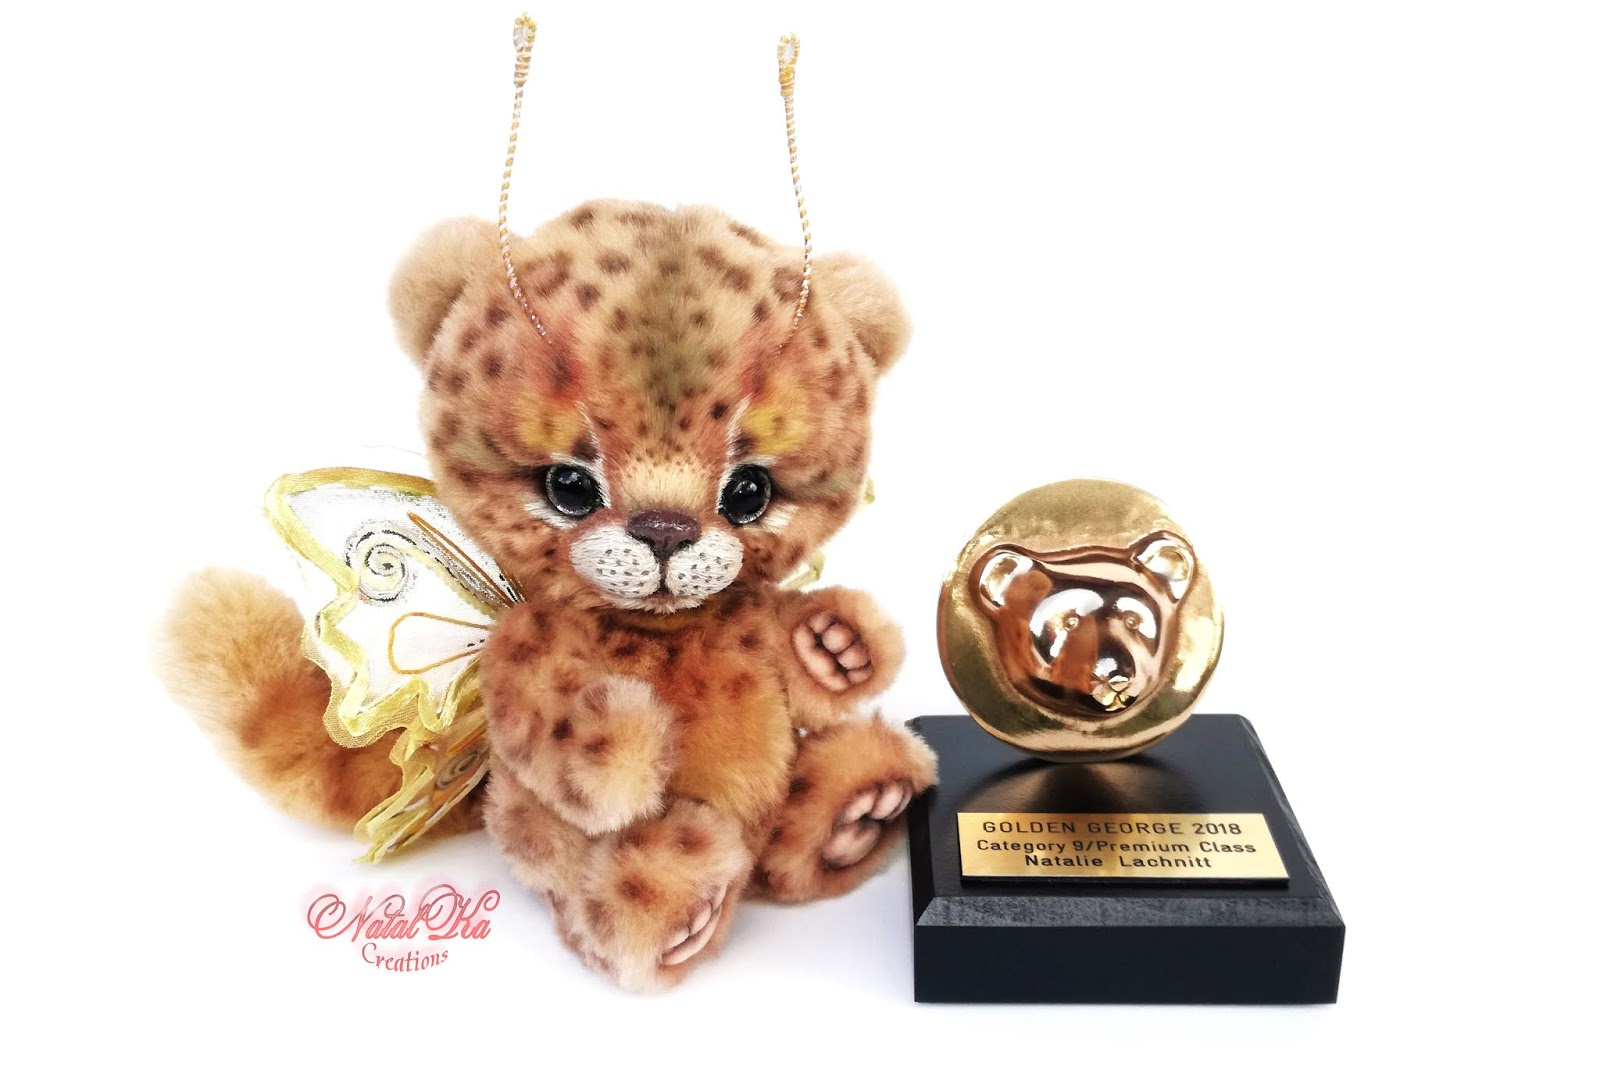 NatalKa Creations - teddies with charm: Welcome to the world of ...